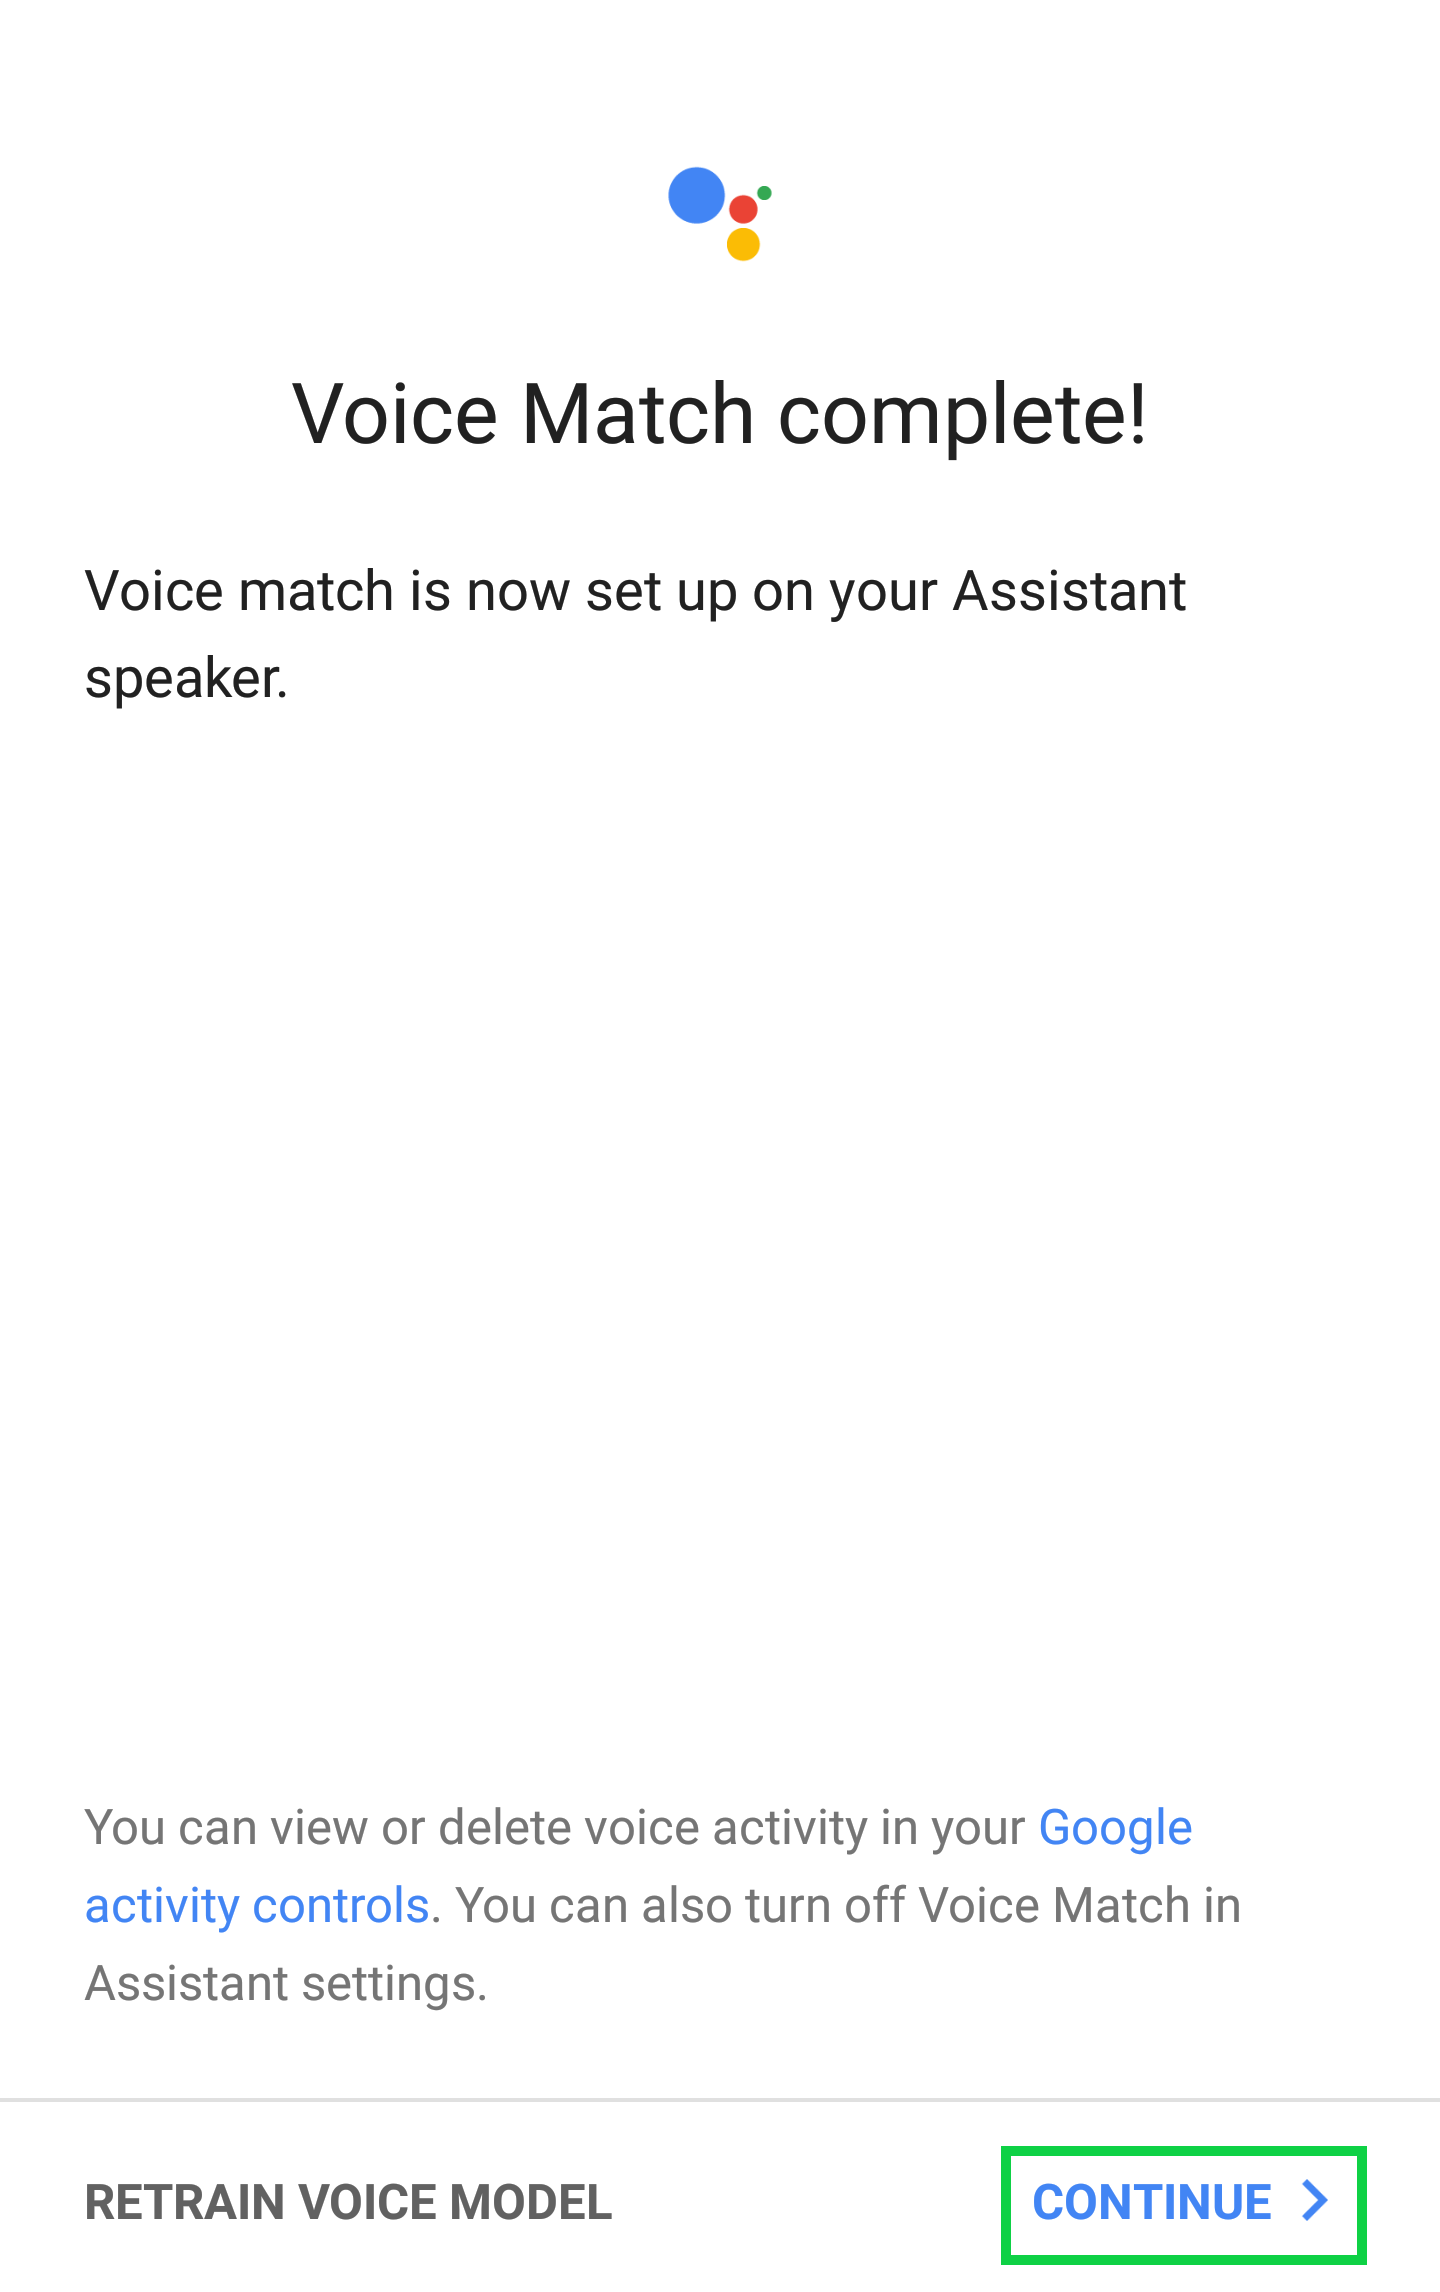 Voice Match Complete page with Continue highlighted